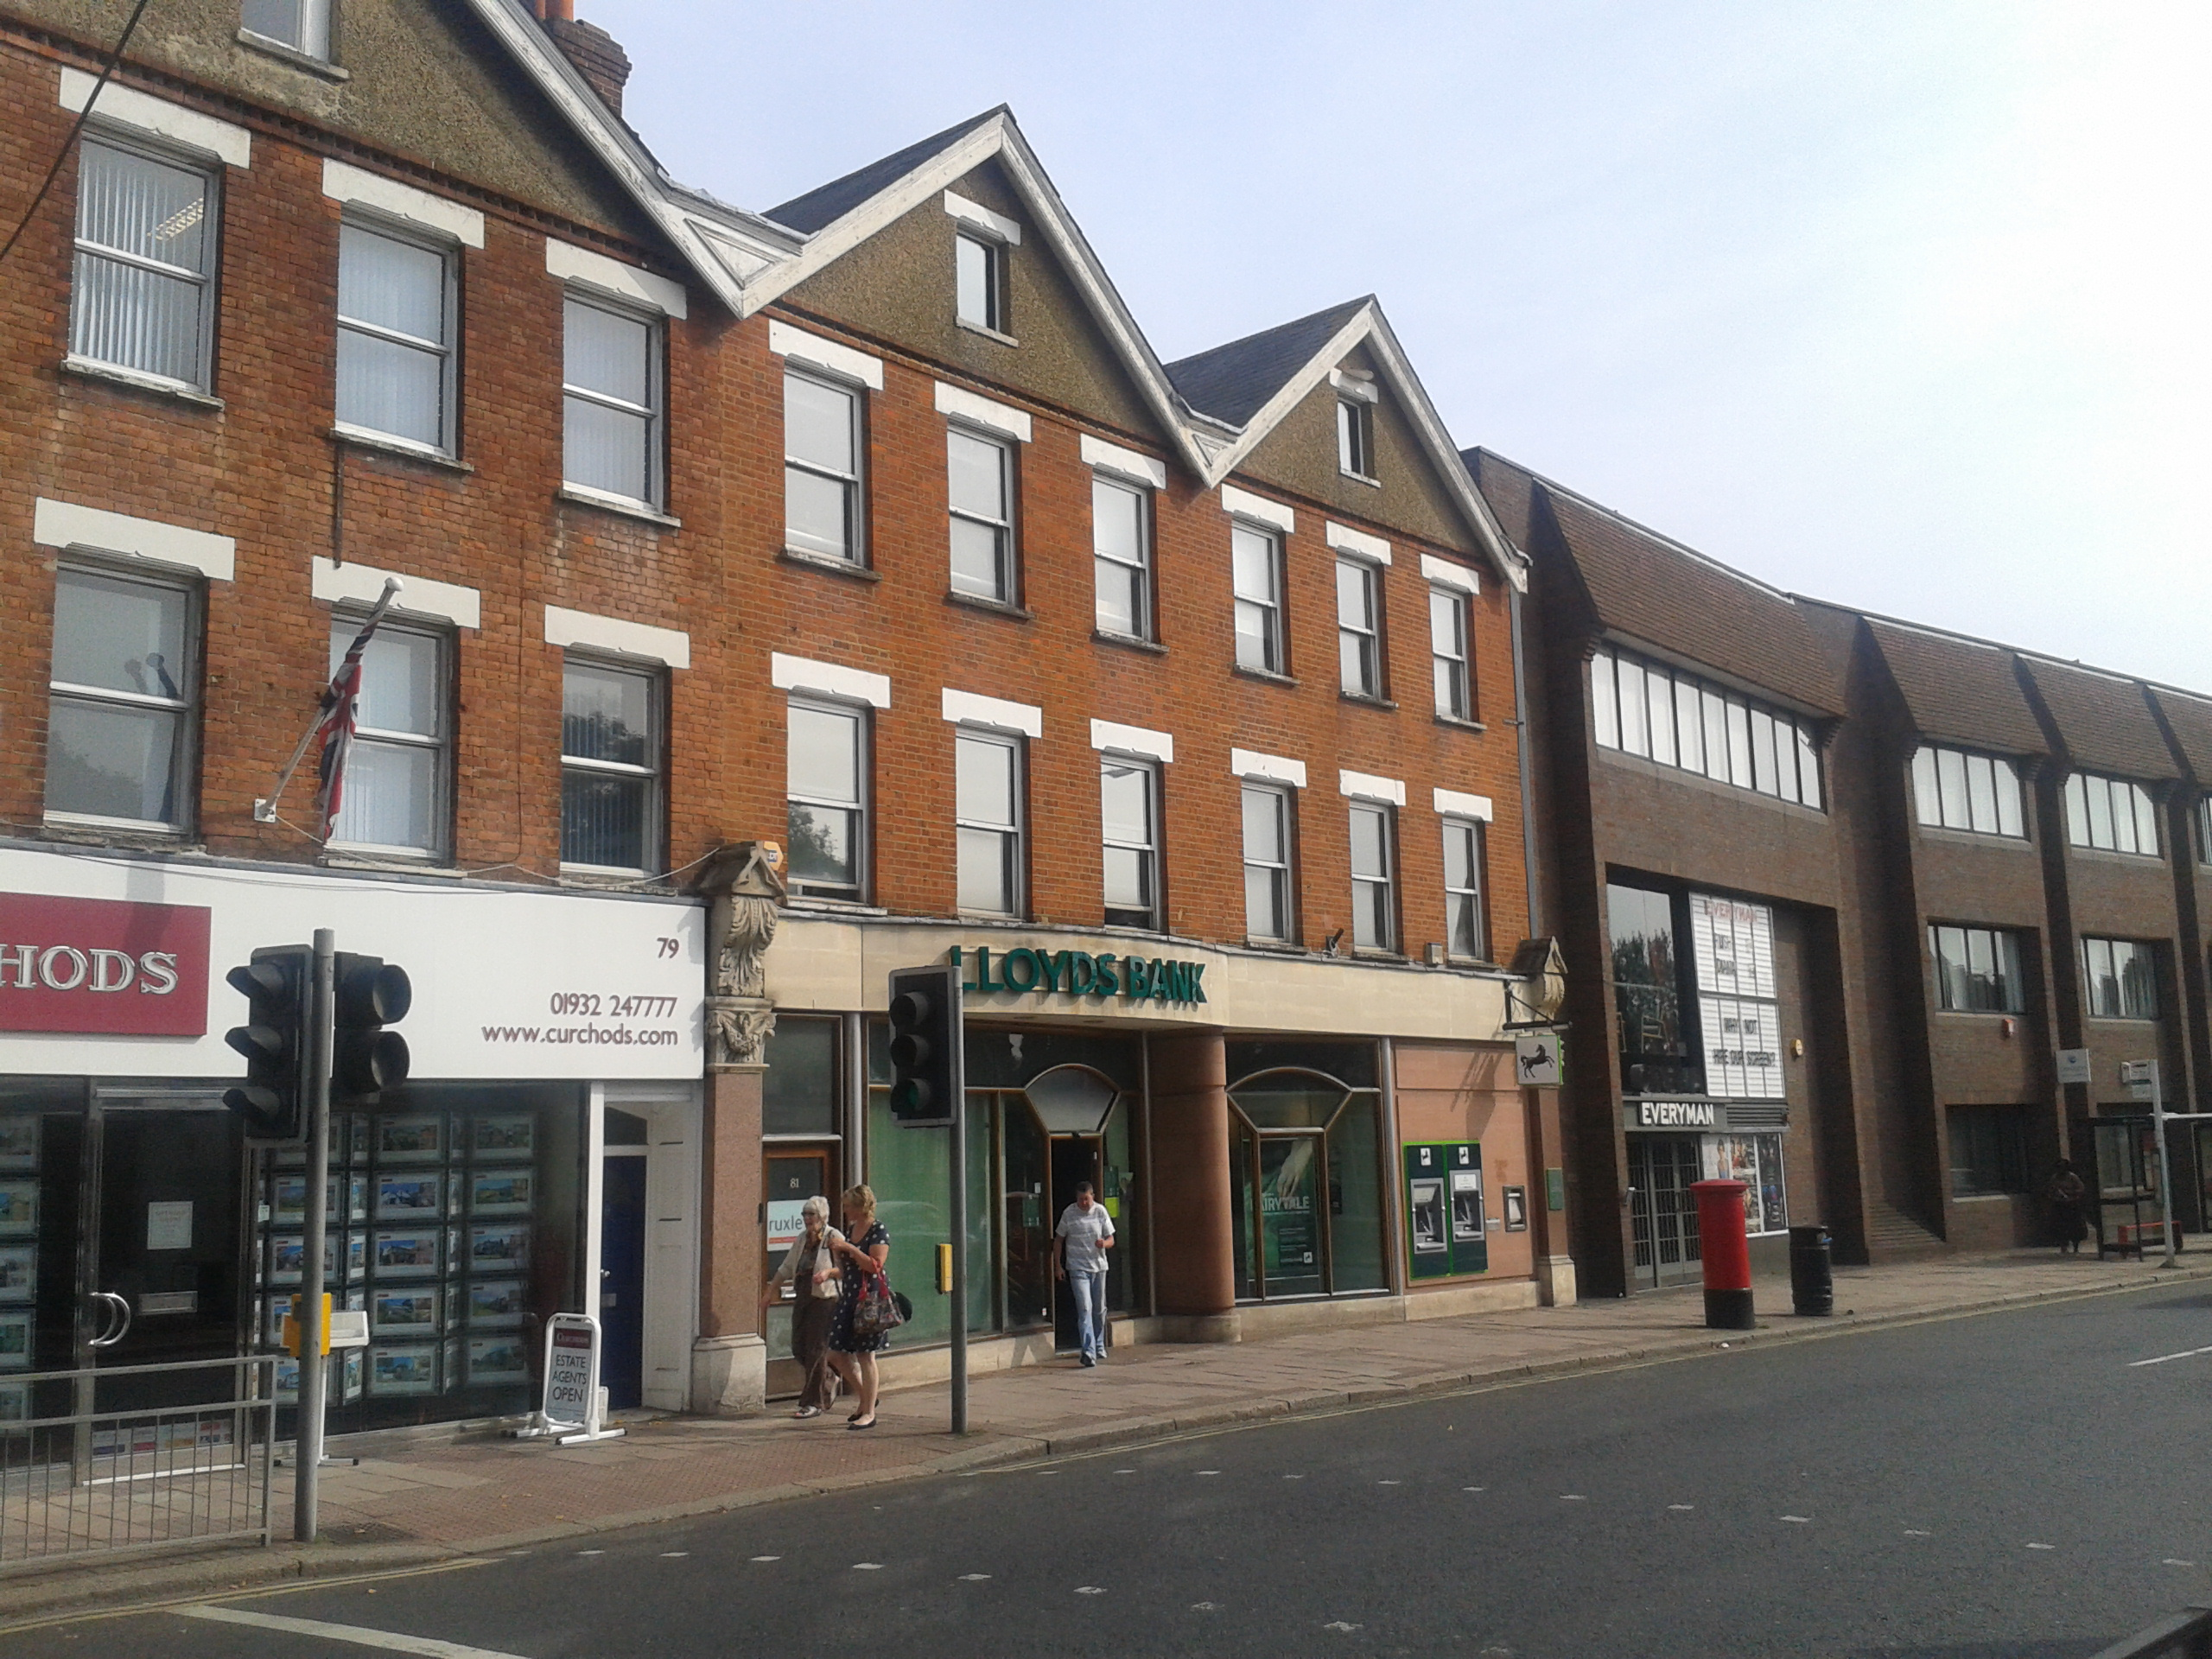 High Street, Walton-on-Thames, KT12